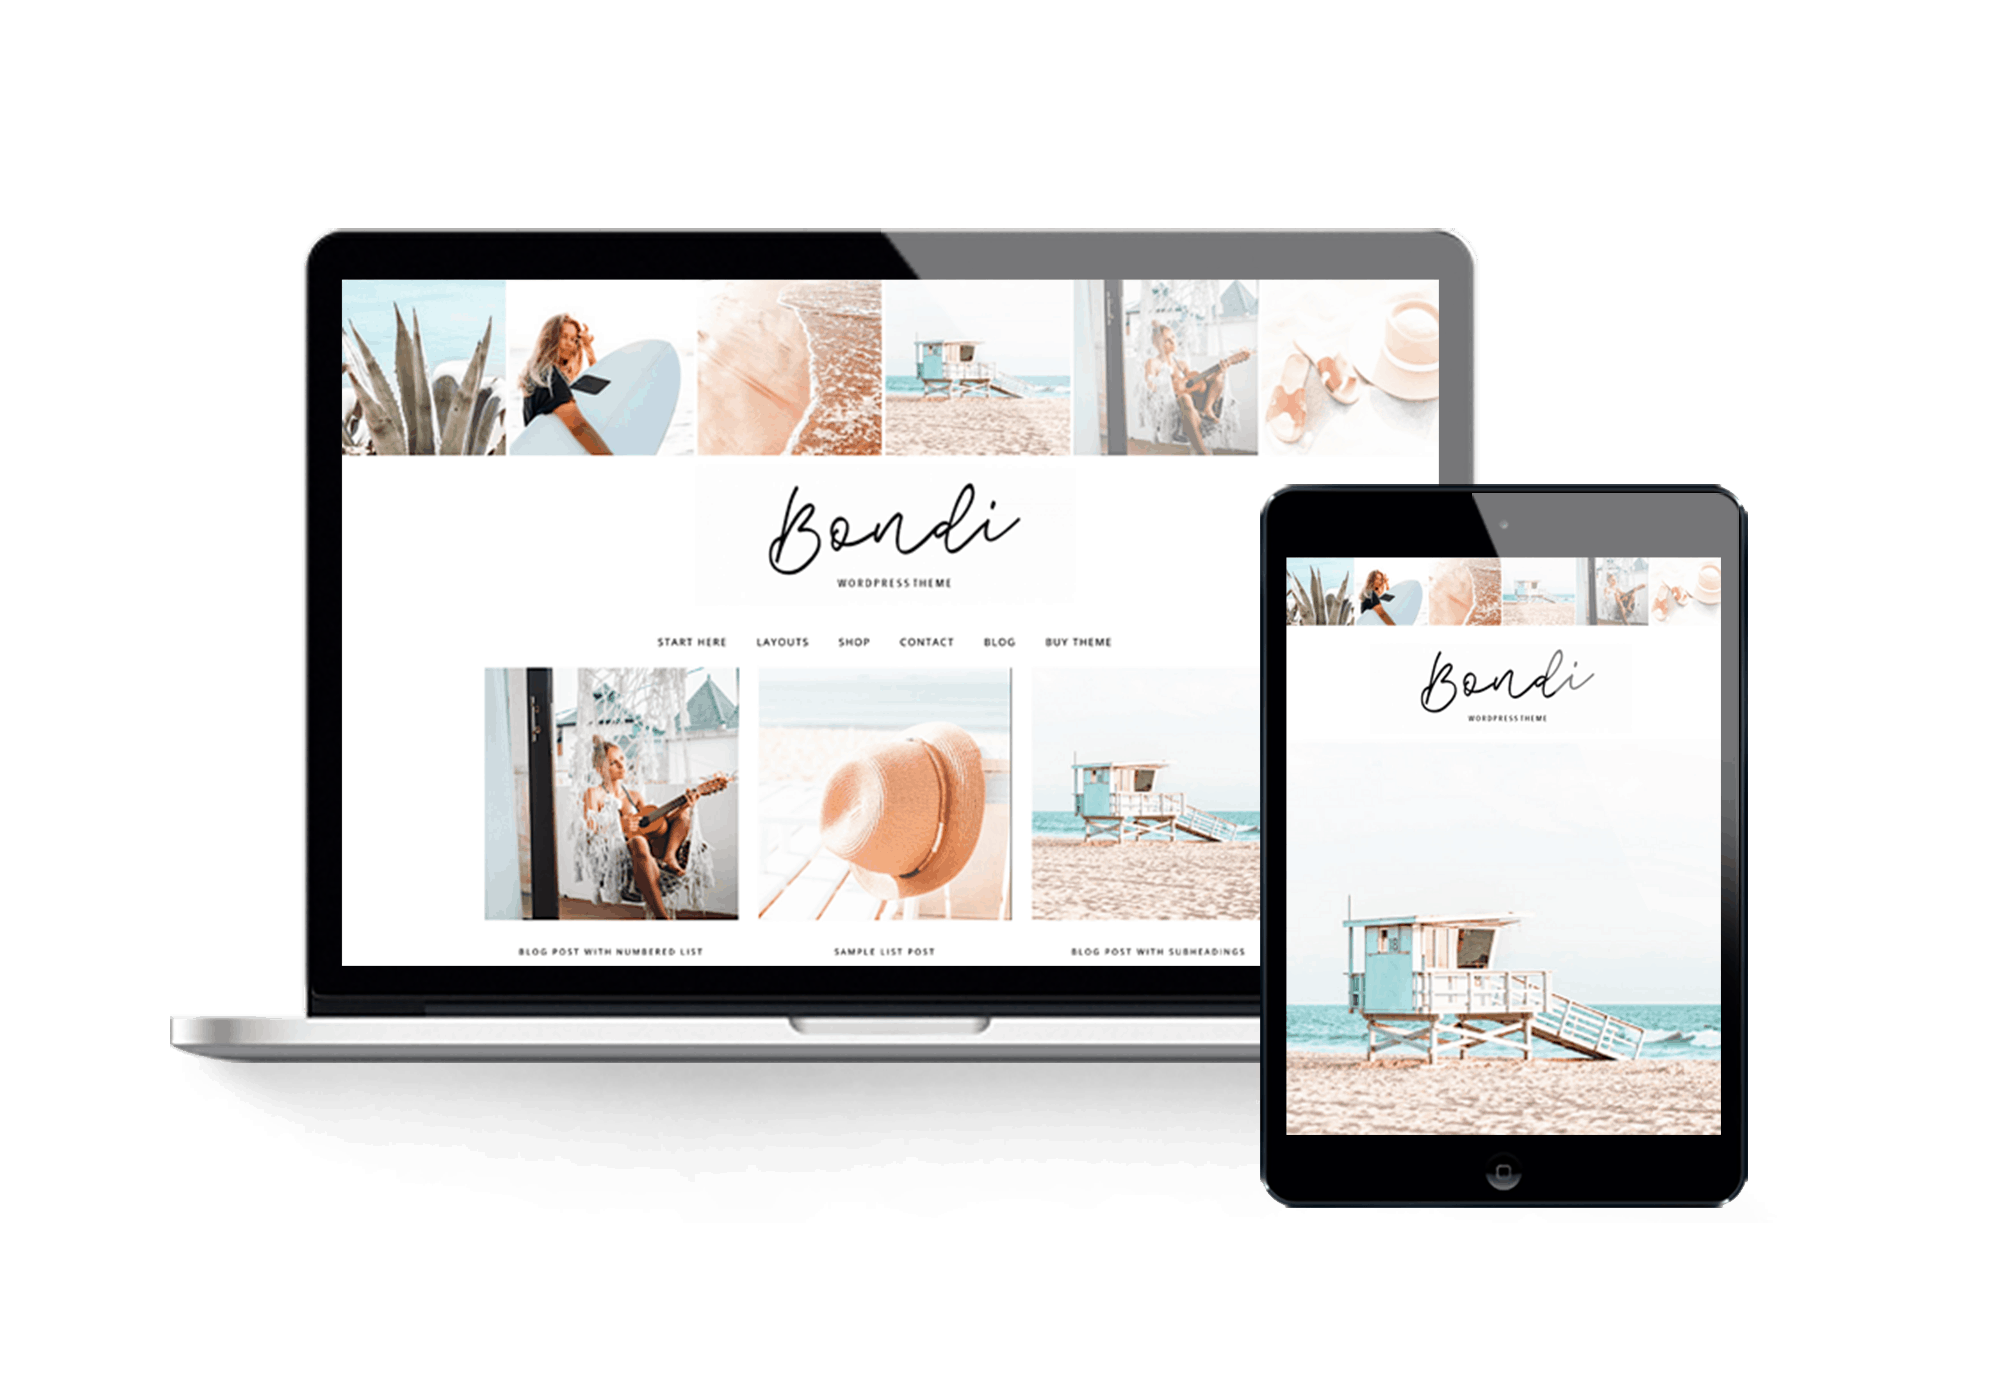 Bondi travel WordPress theme